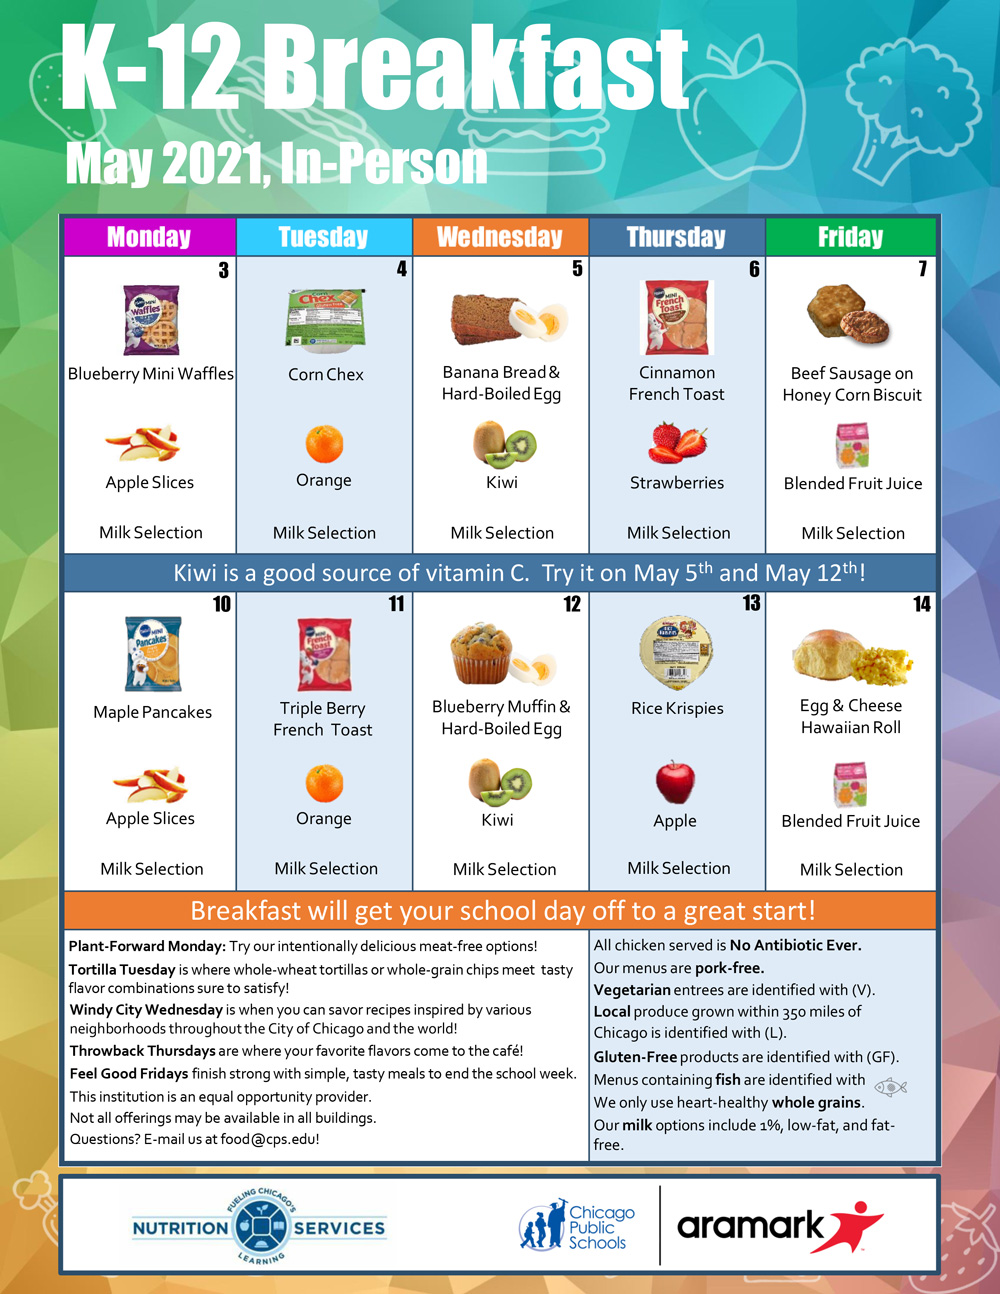 May 2021 SFSP K-12 Breakfast (in-school) between May 1st and May 15th